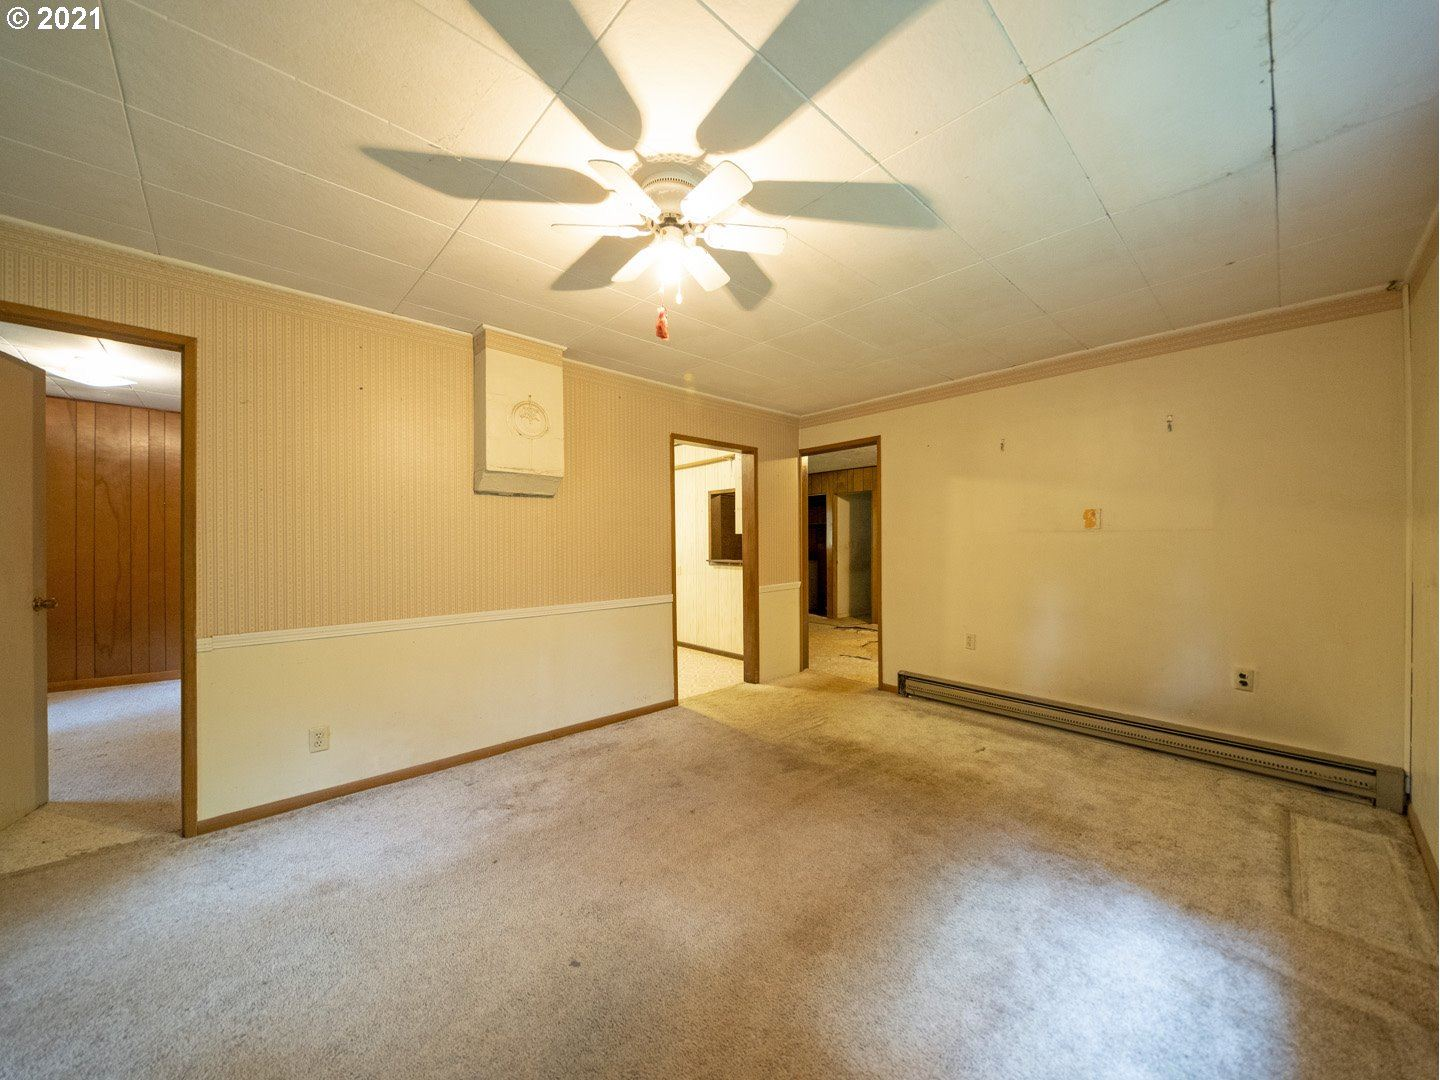 Photo of 14575 NW EBERLY RD, Banks, OR 97106 (MLS # 21540570)